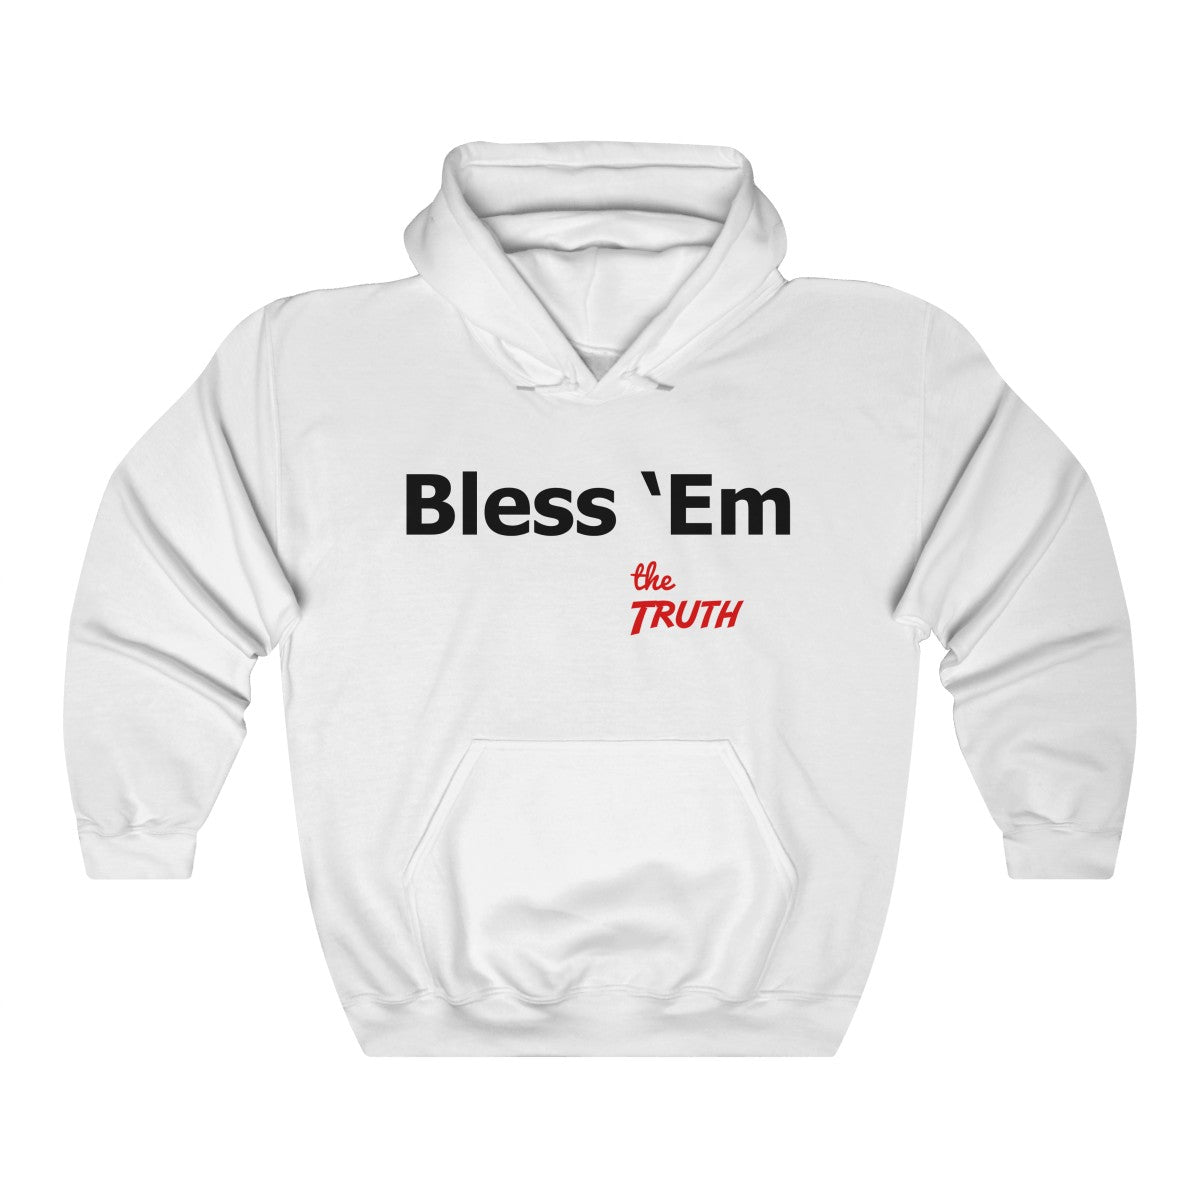 You've got a job to do, Bless 'Em! Bless them with your ability and gifts. Christian Hoodie